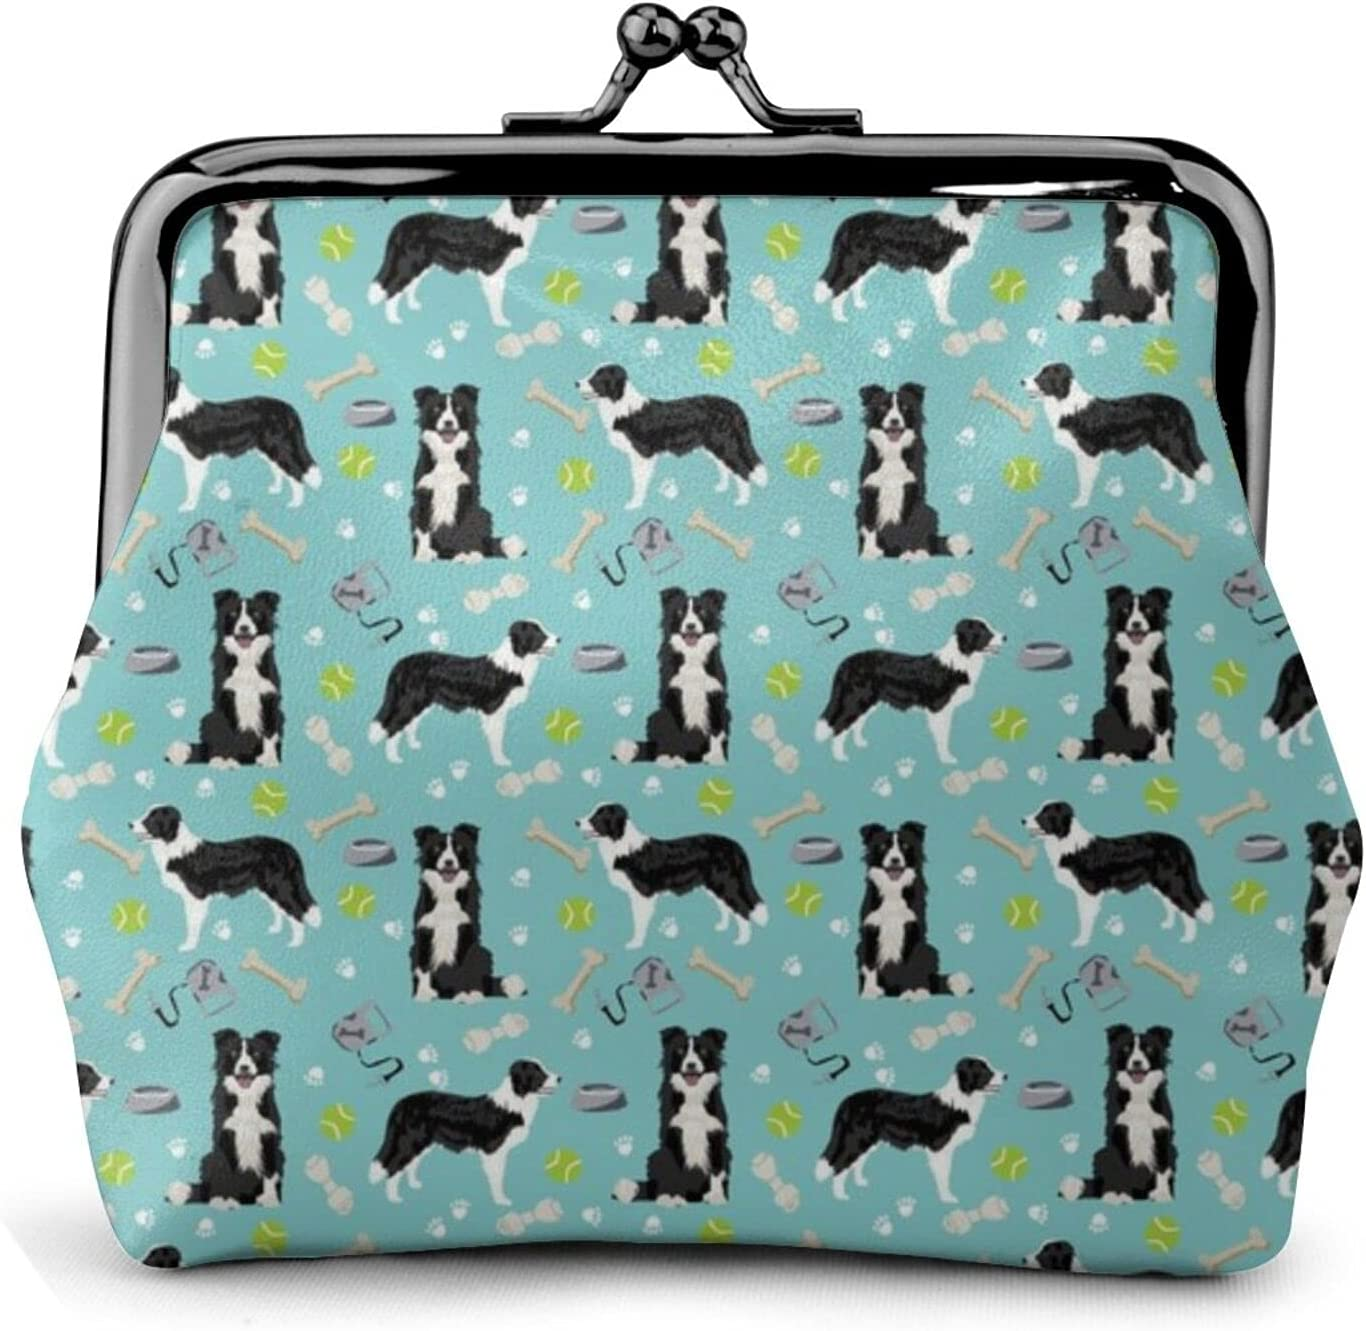 Border Collie Toys 843 Coin Purse Retro Money Pouch with Kiss-lock Buckle Small Wallet for Women and Girls